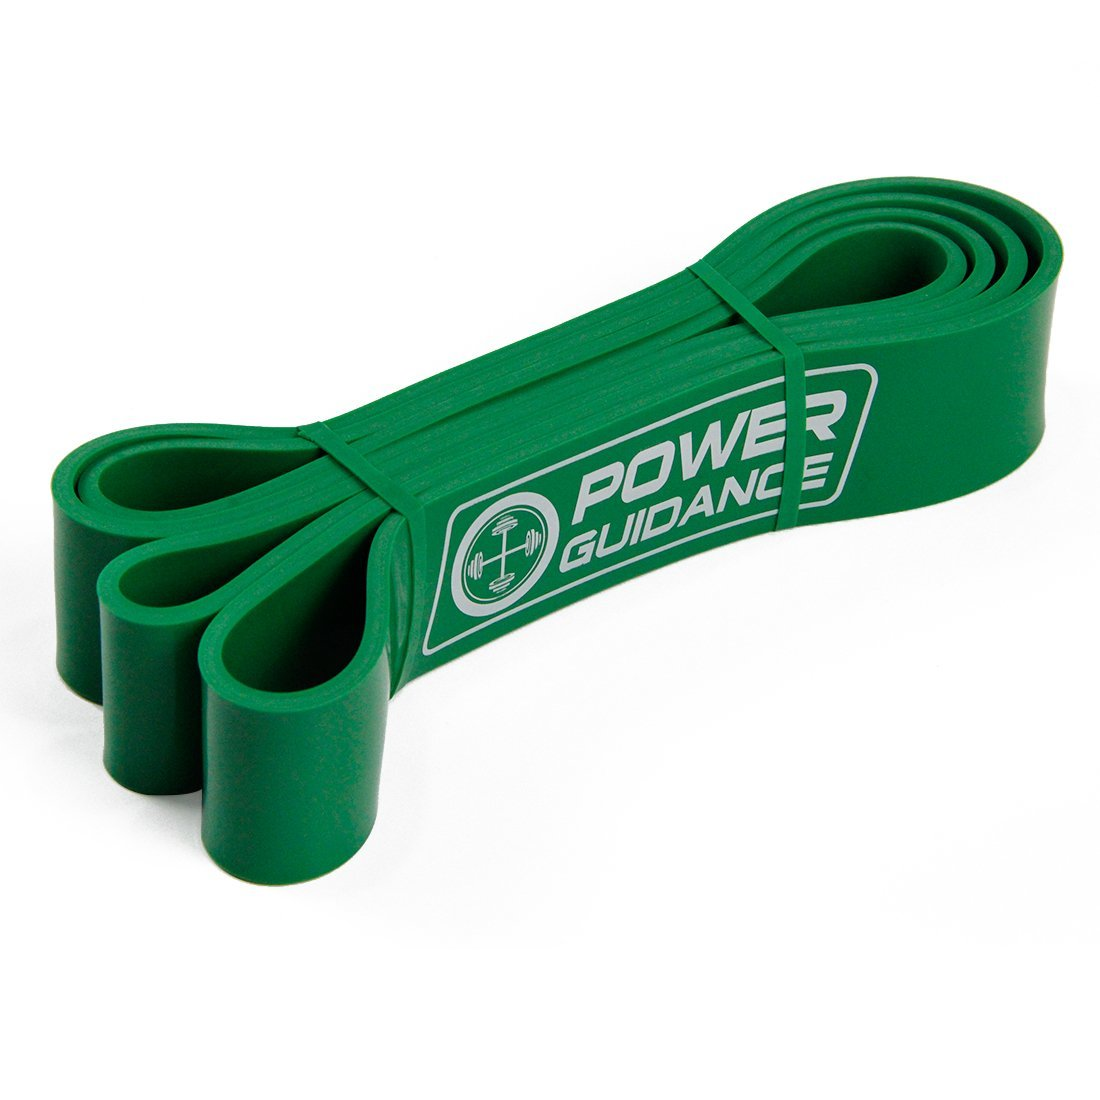 POWER GUIDANCE Pull Up Assist Bands - Stretch Resistance Band - Mobility Band - Powerlifting Bands - by Perfect for Body Stretching, Powerlifting, Resistance Training - Single Unit- Green by POWER GUIDANCE (Image #8)